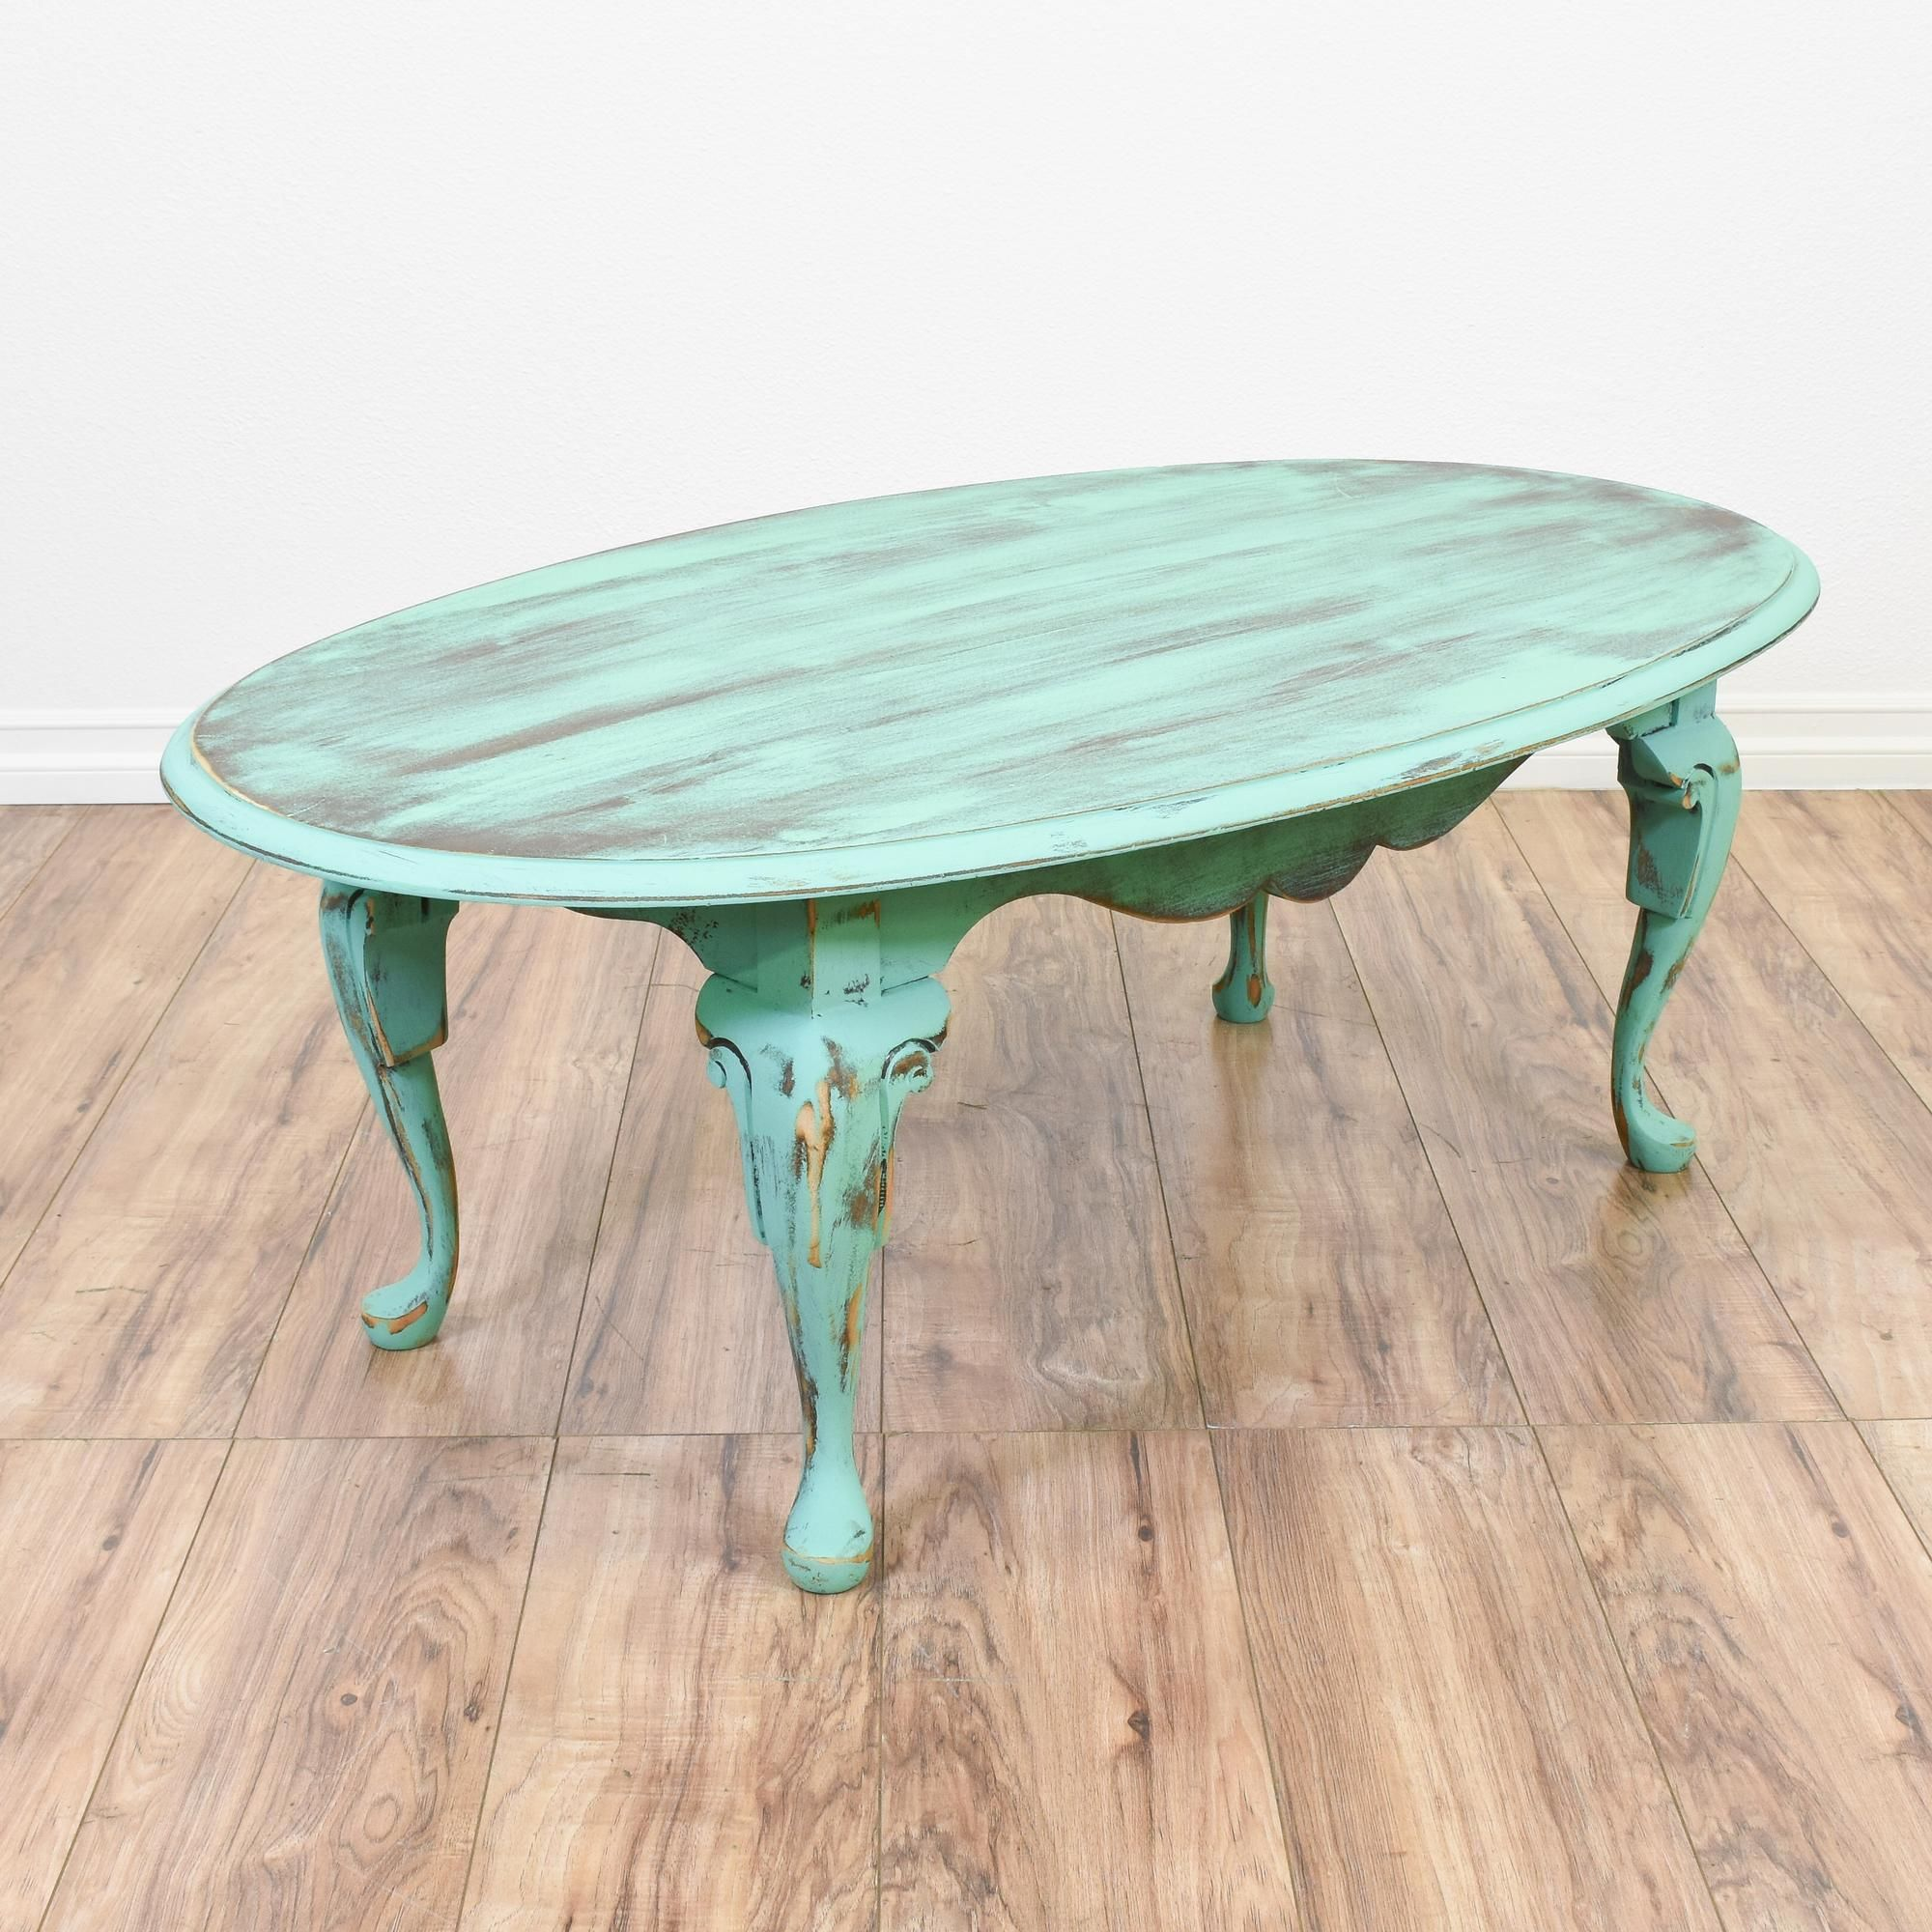 This Shabby Chic Coffee Table Is Featured In A Solid Wood With A Distressed  Light Teal Chalk Paint Finish. This Coffee Table Has A Large Oval Table  Top, ...